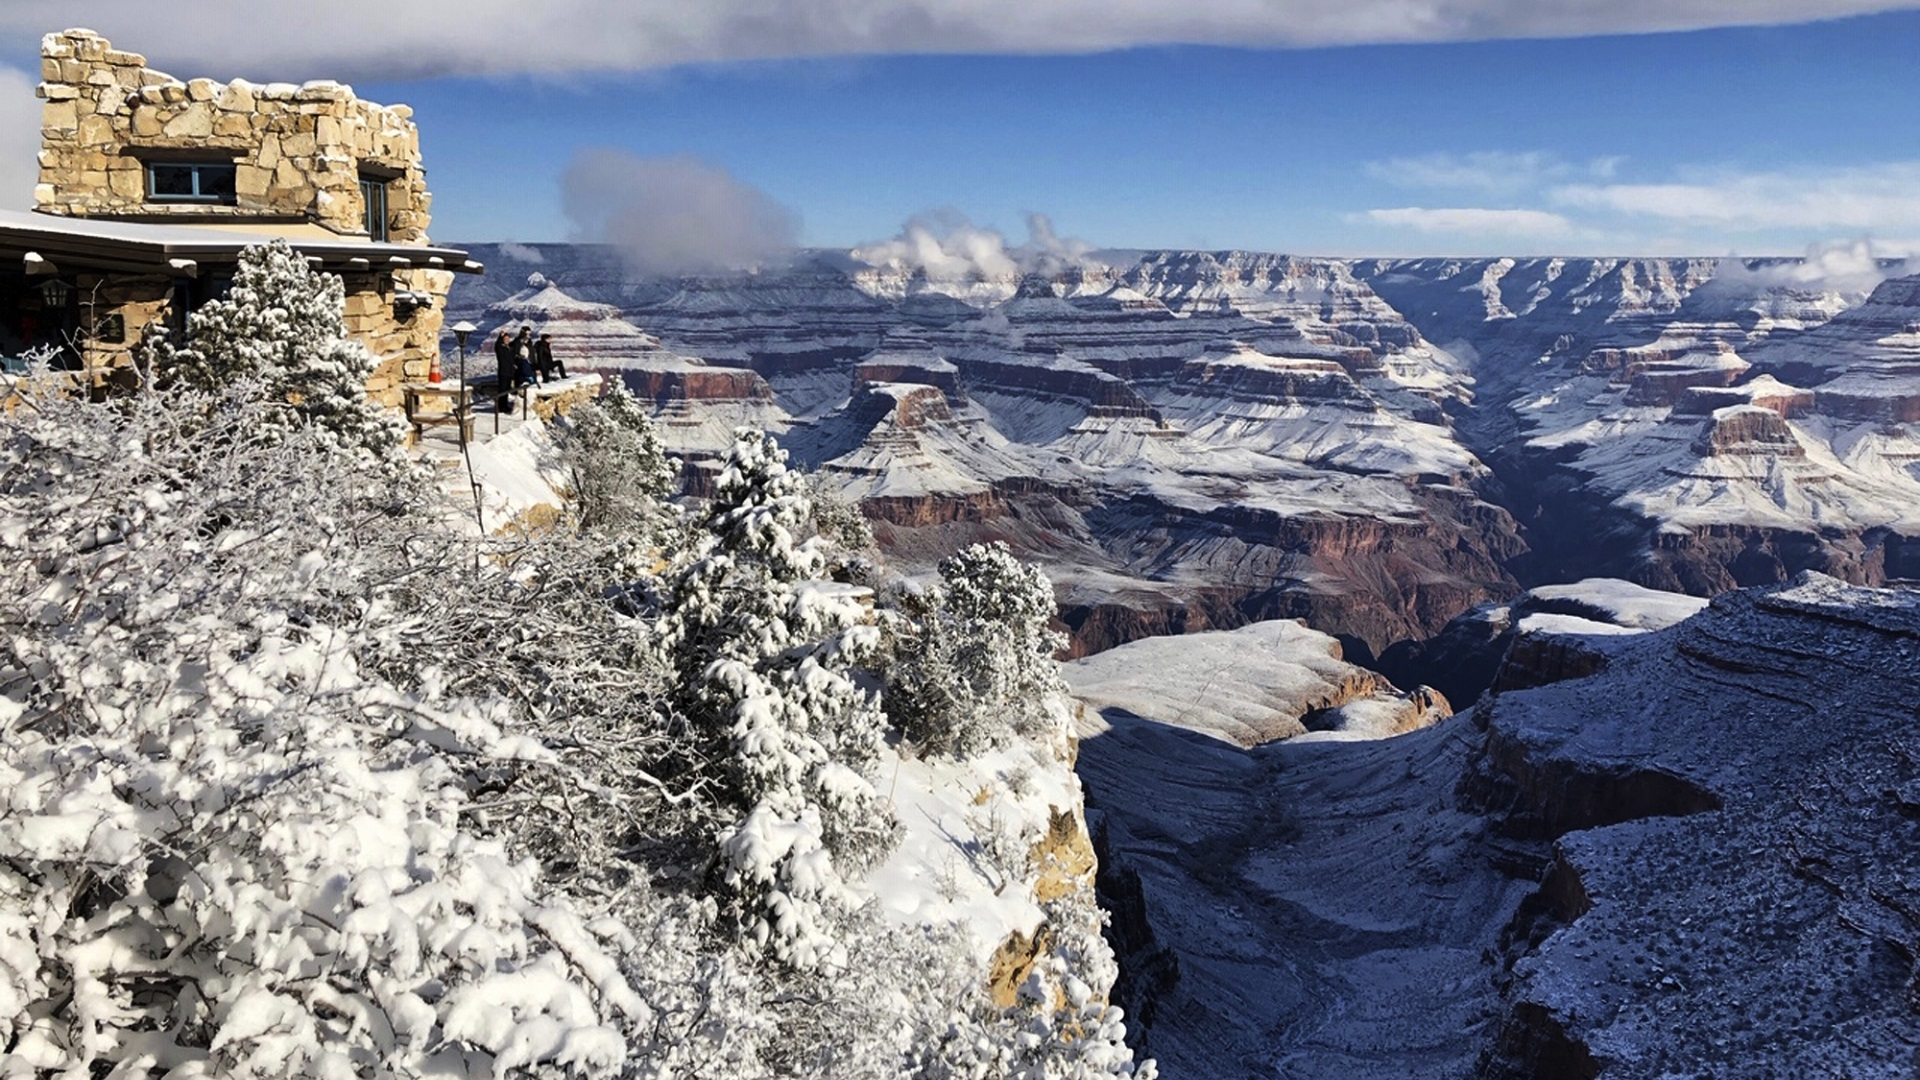 National Parks Struggle To Stay Open Safe During Shutdown